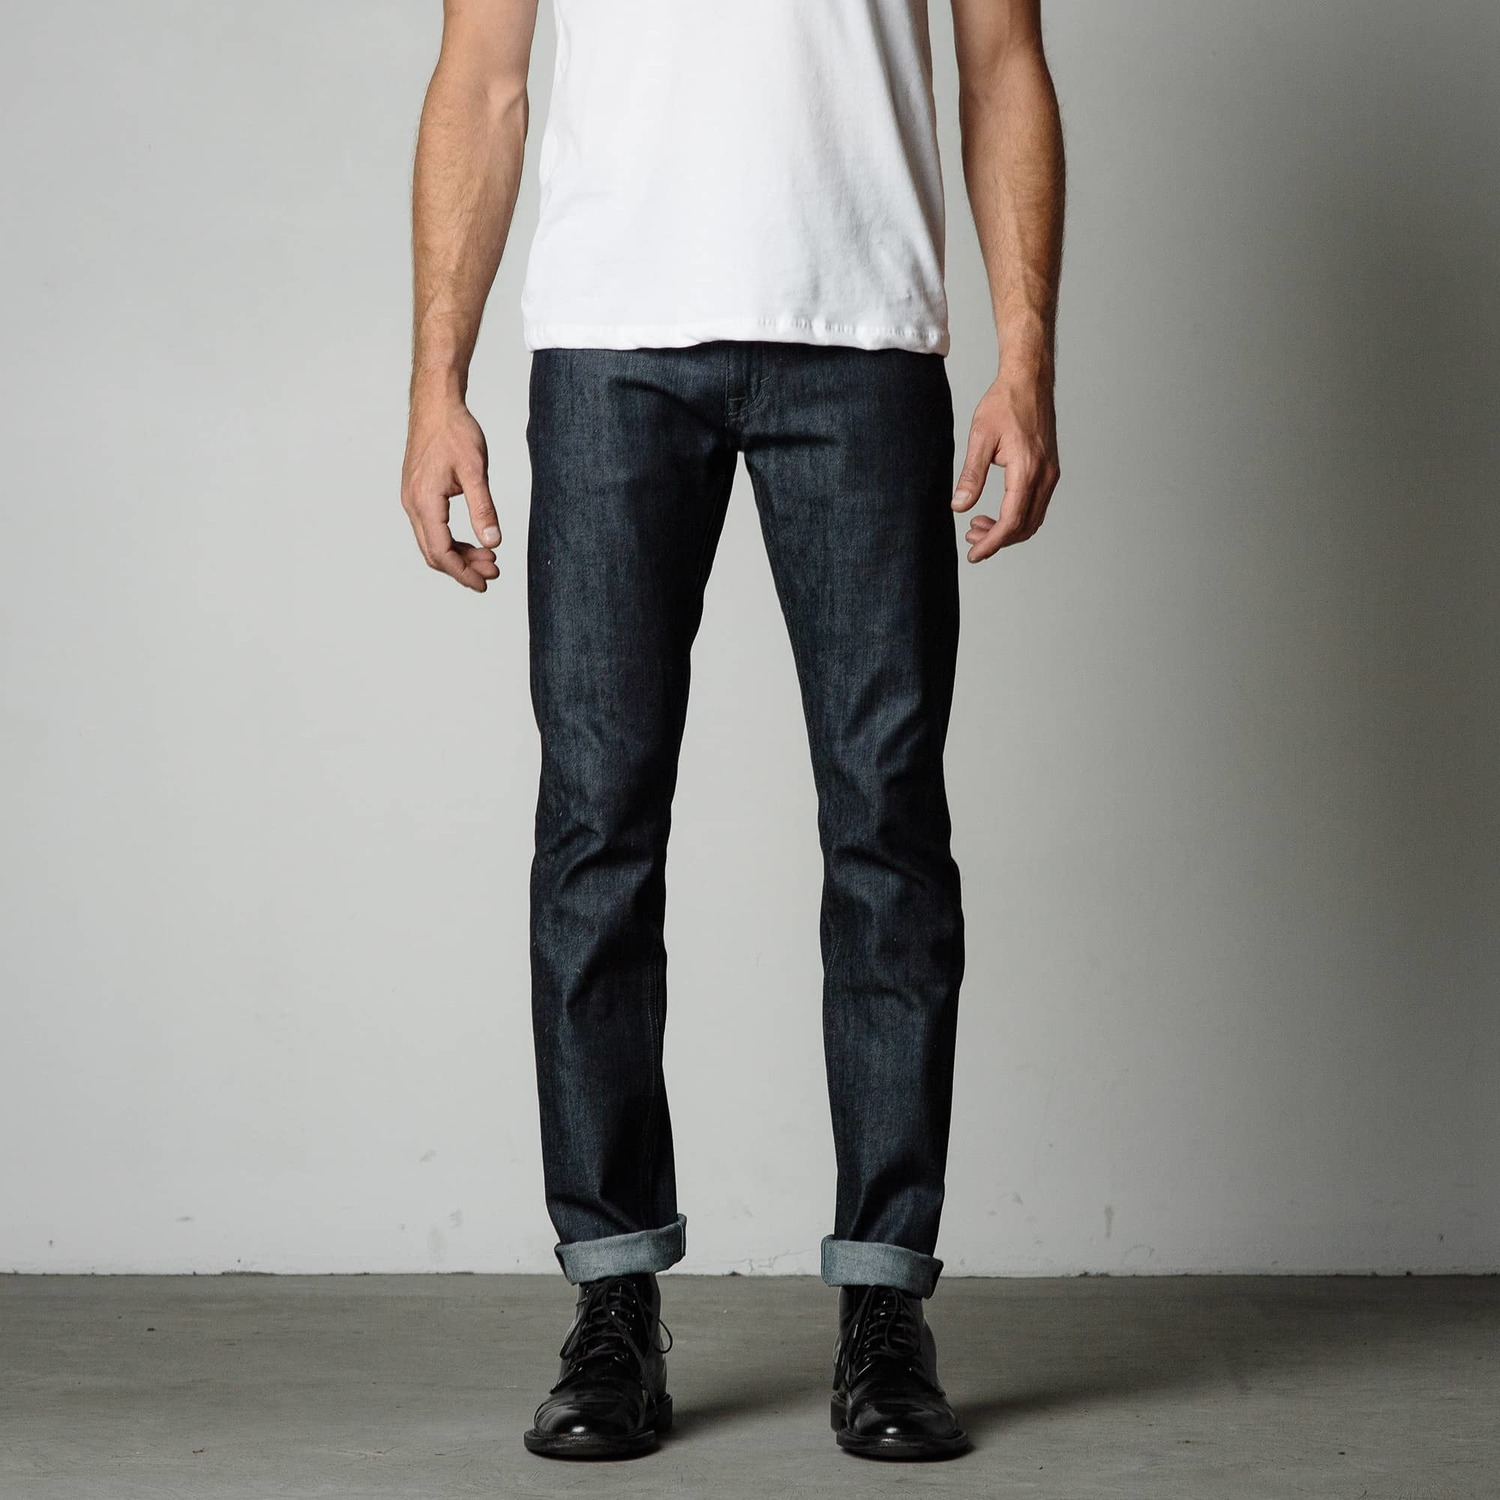 Mens Slim Jeans | Black, Grey, Raw Mens Slim Fit Jeans | DSTLD